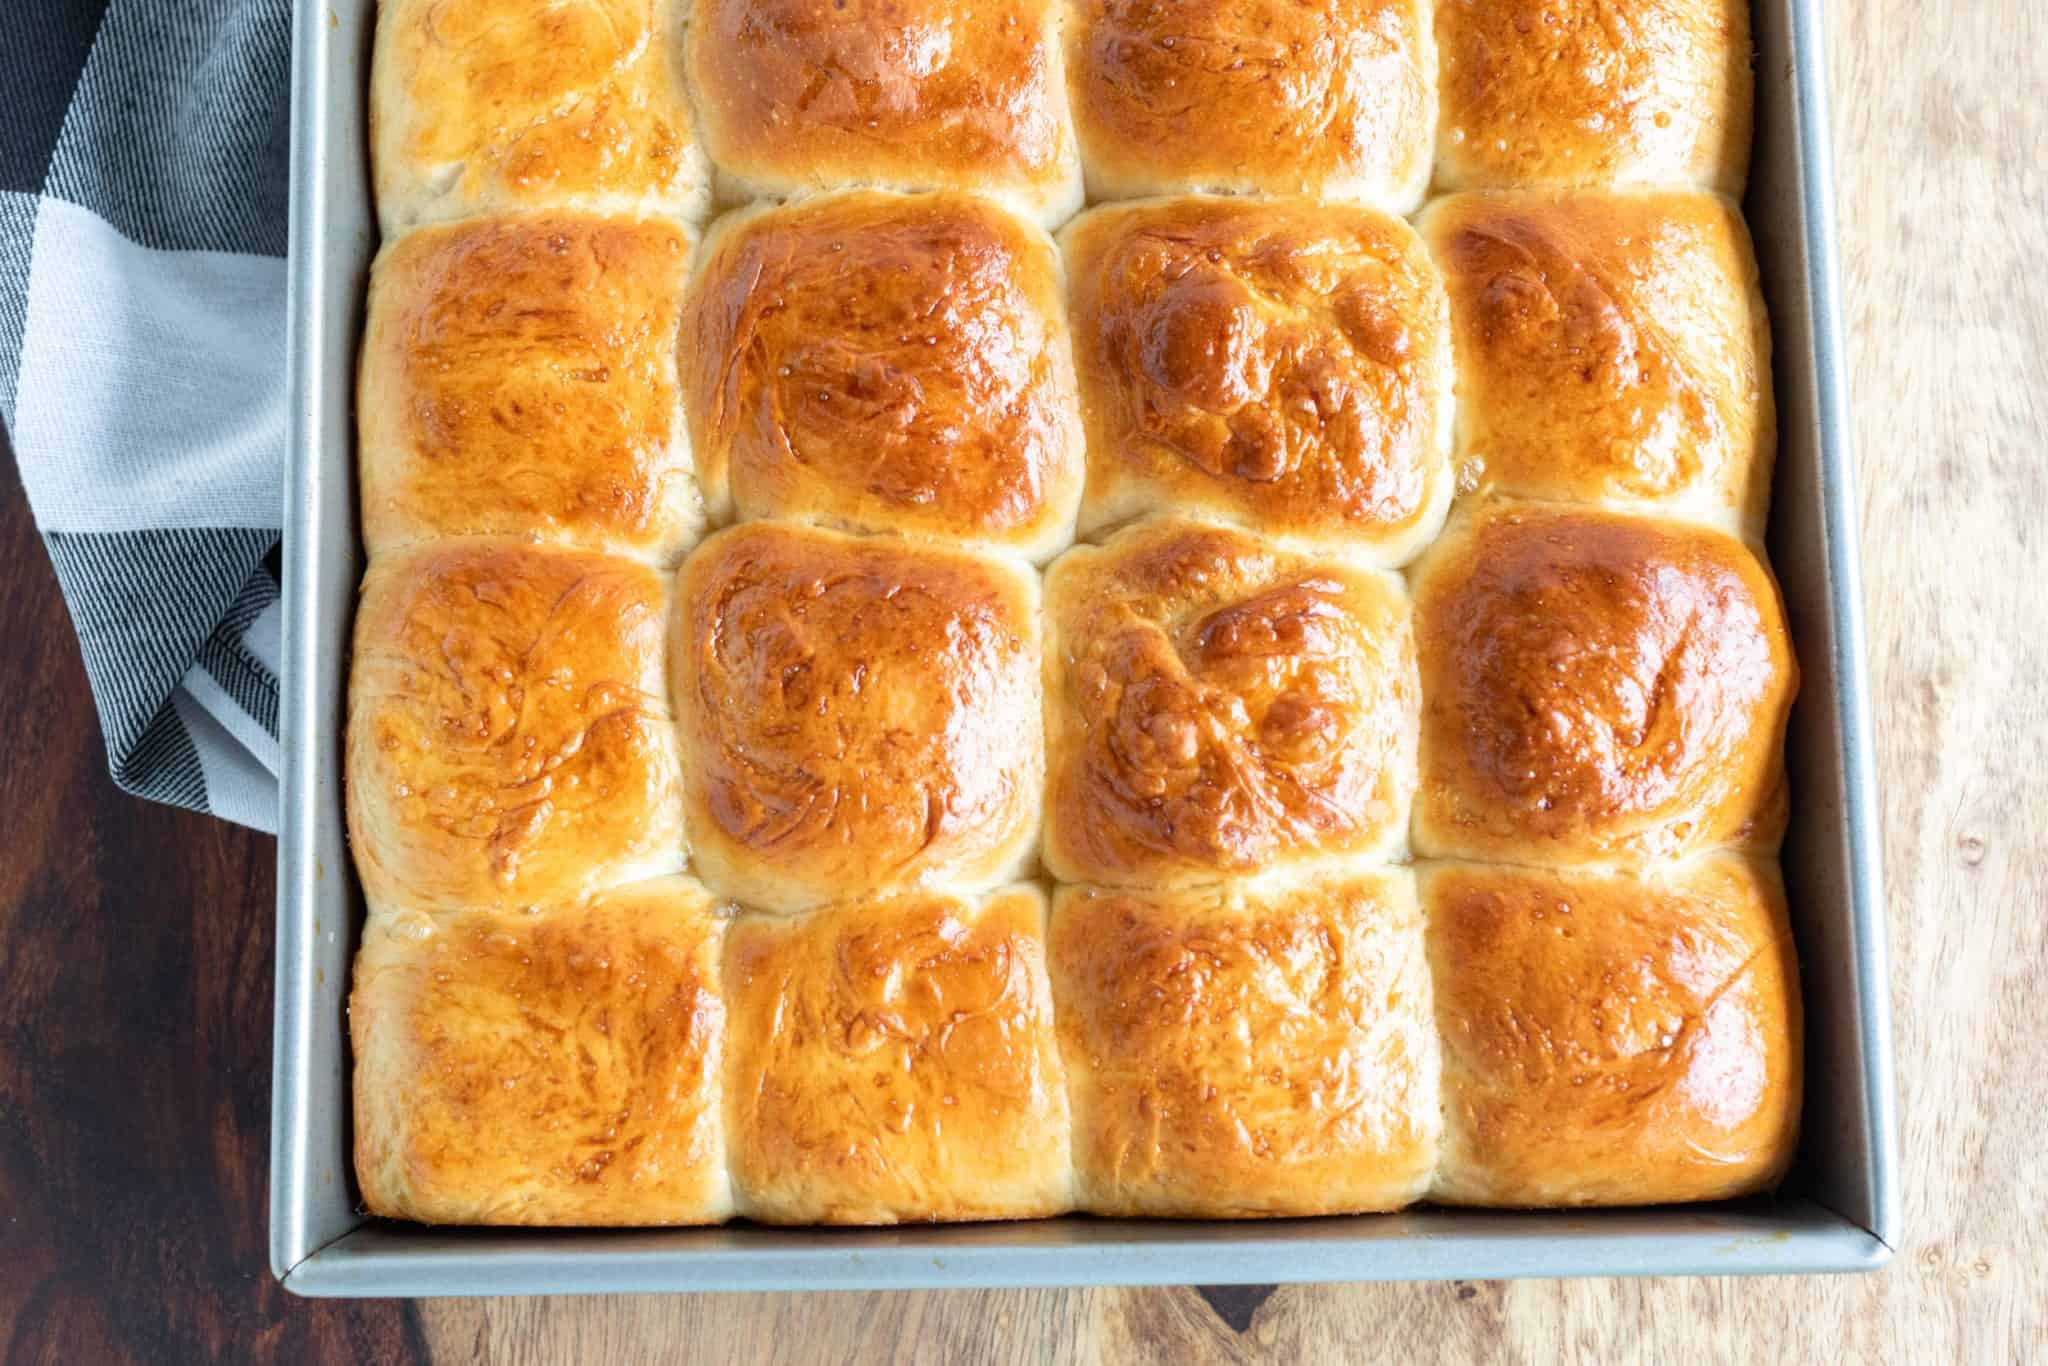 Hawaiian Sweet Rolls fresh out of the oven baked until golden brown